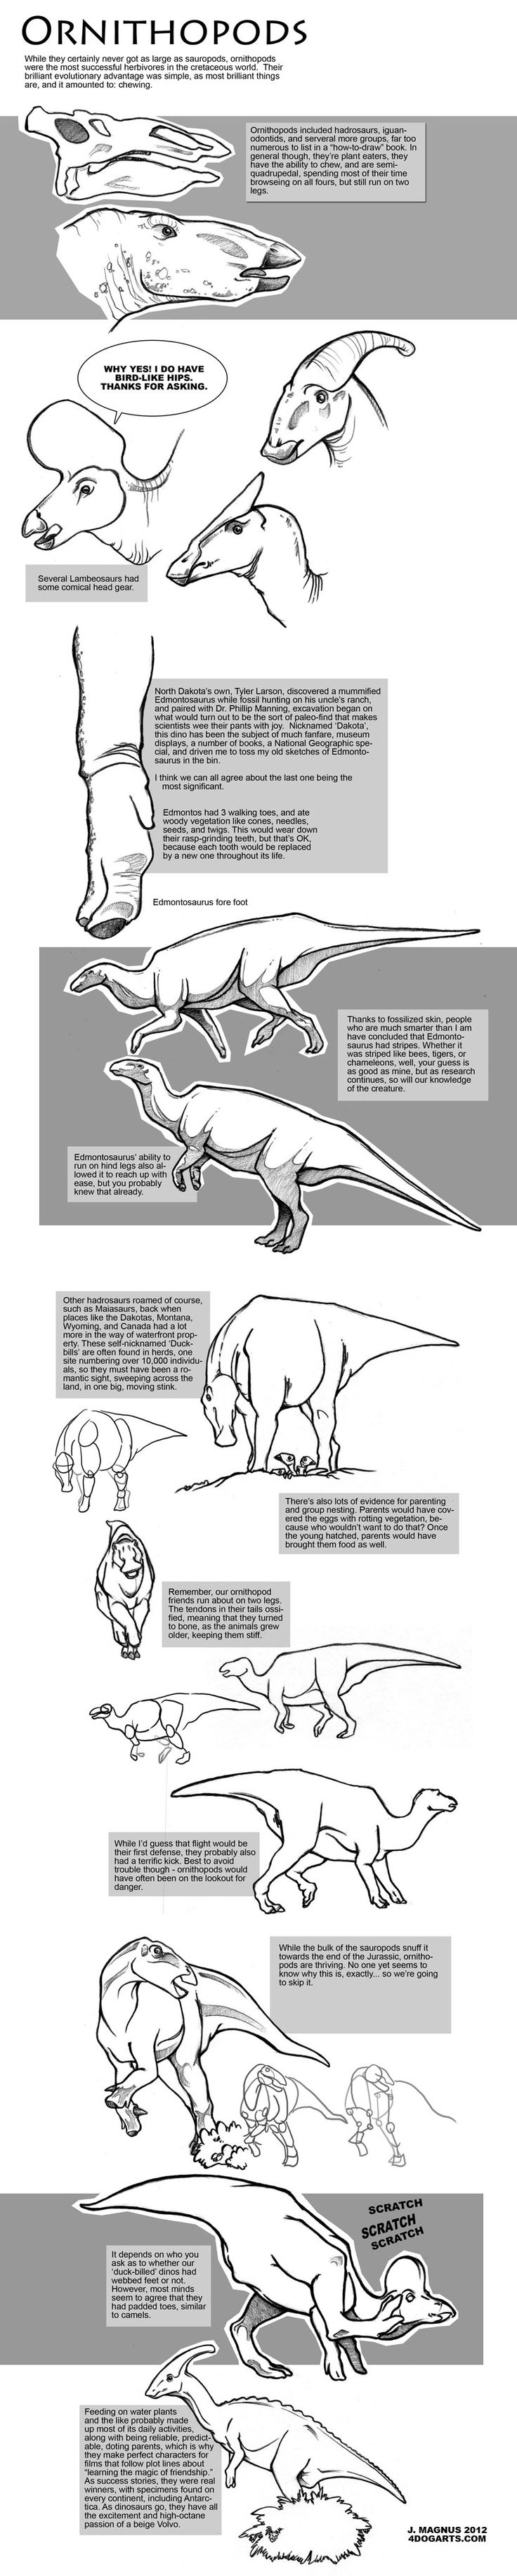 Ornithopods Webby Drawing Tutorial by sketcherjak on DeviantArt